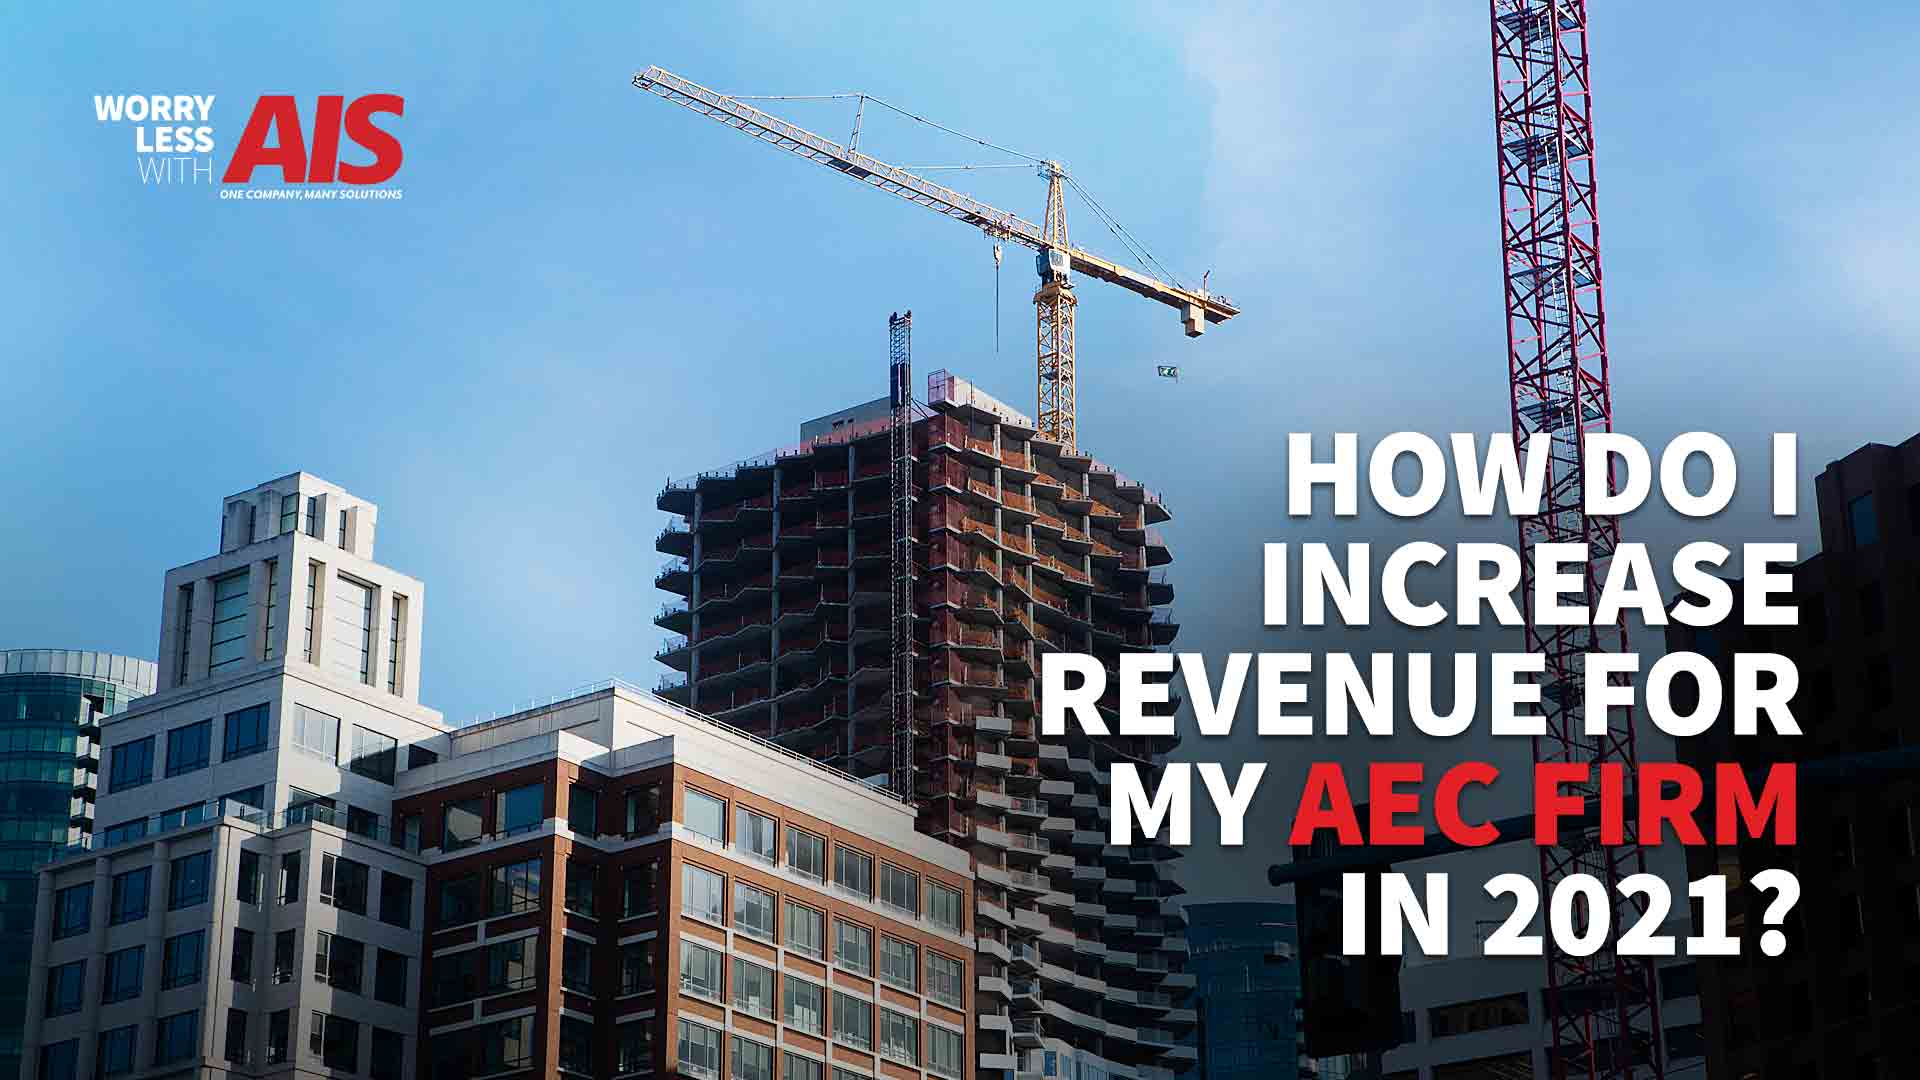 how-do-I-increase-revenue-for-my-aec-firm-In-2021